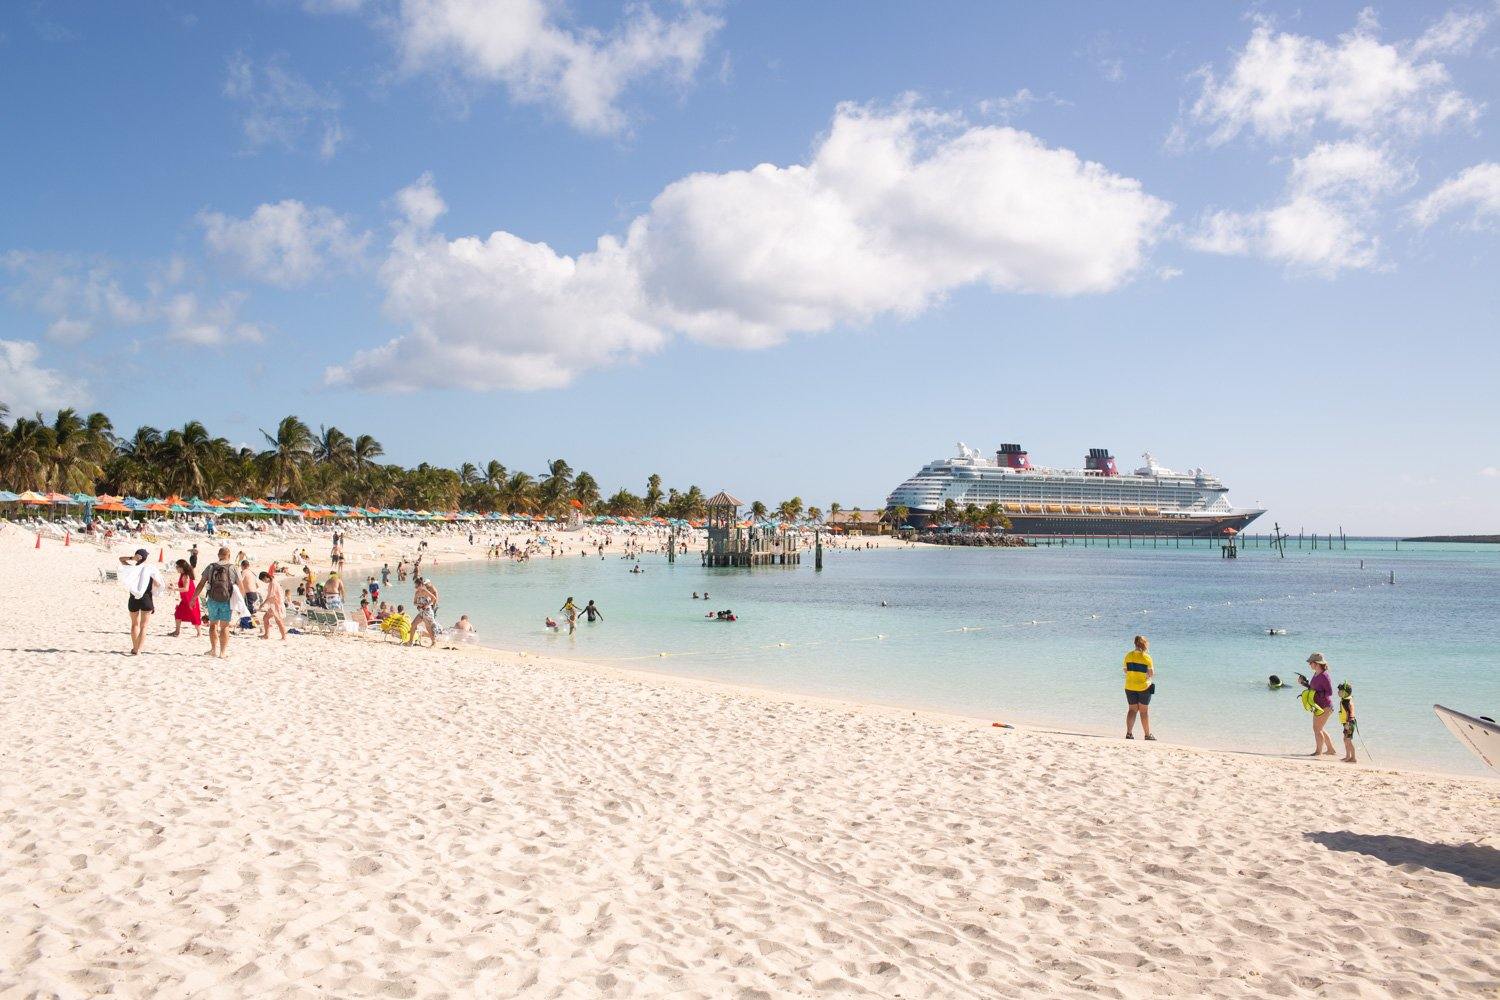 biggest disney cruise ship